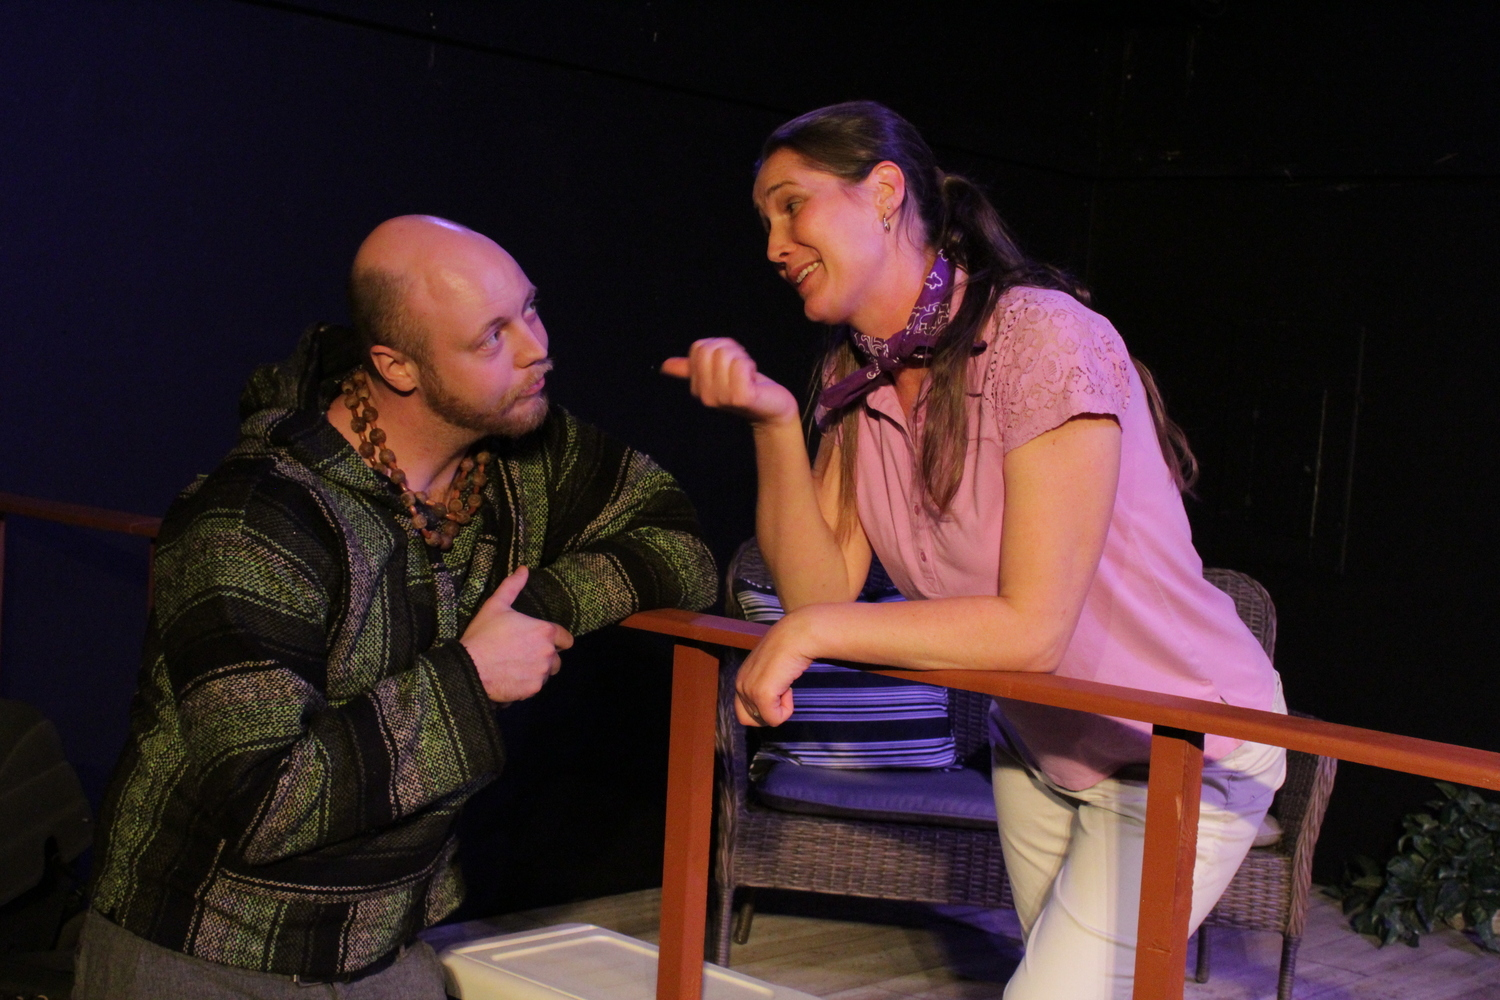 BWW Review: Homespun BARBECUE APOCALYPSE Improves With Age